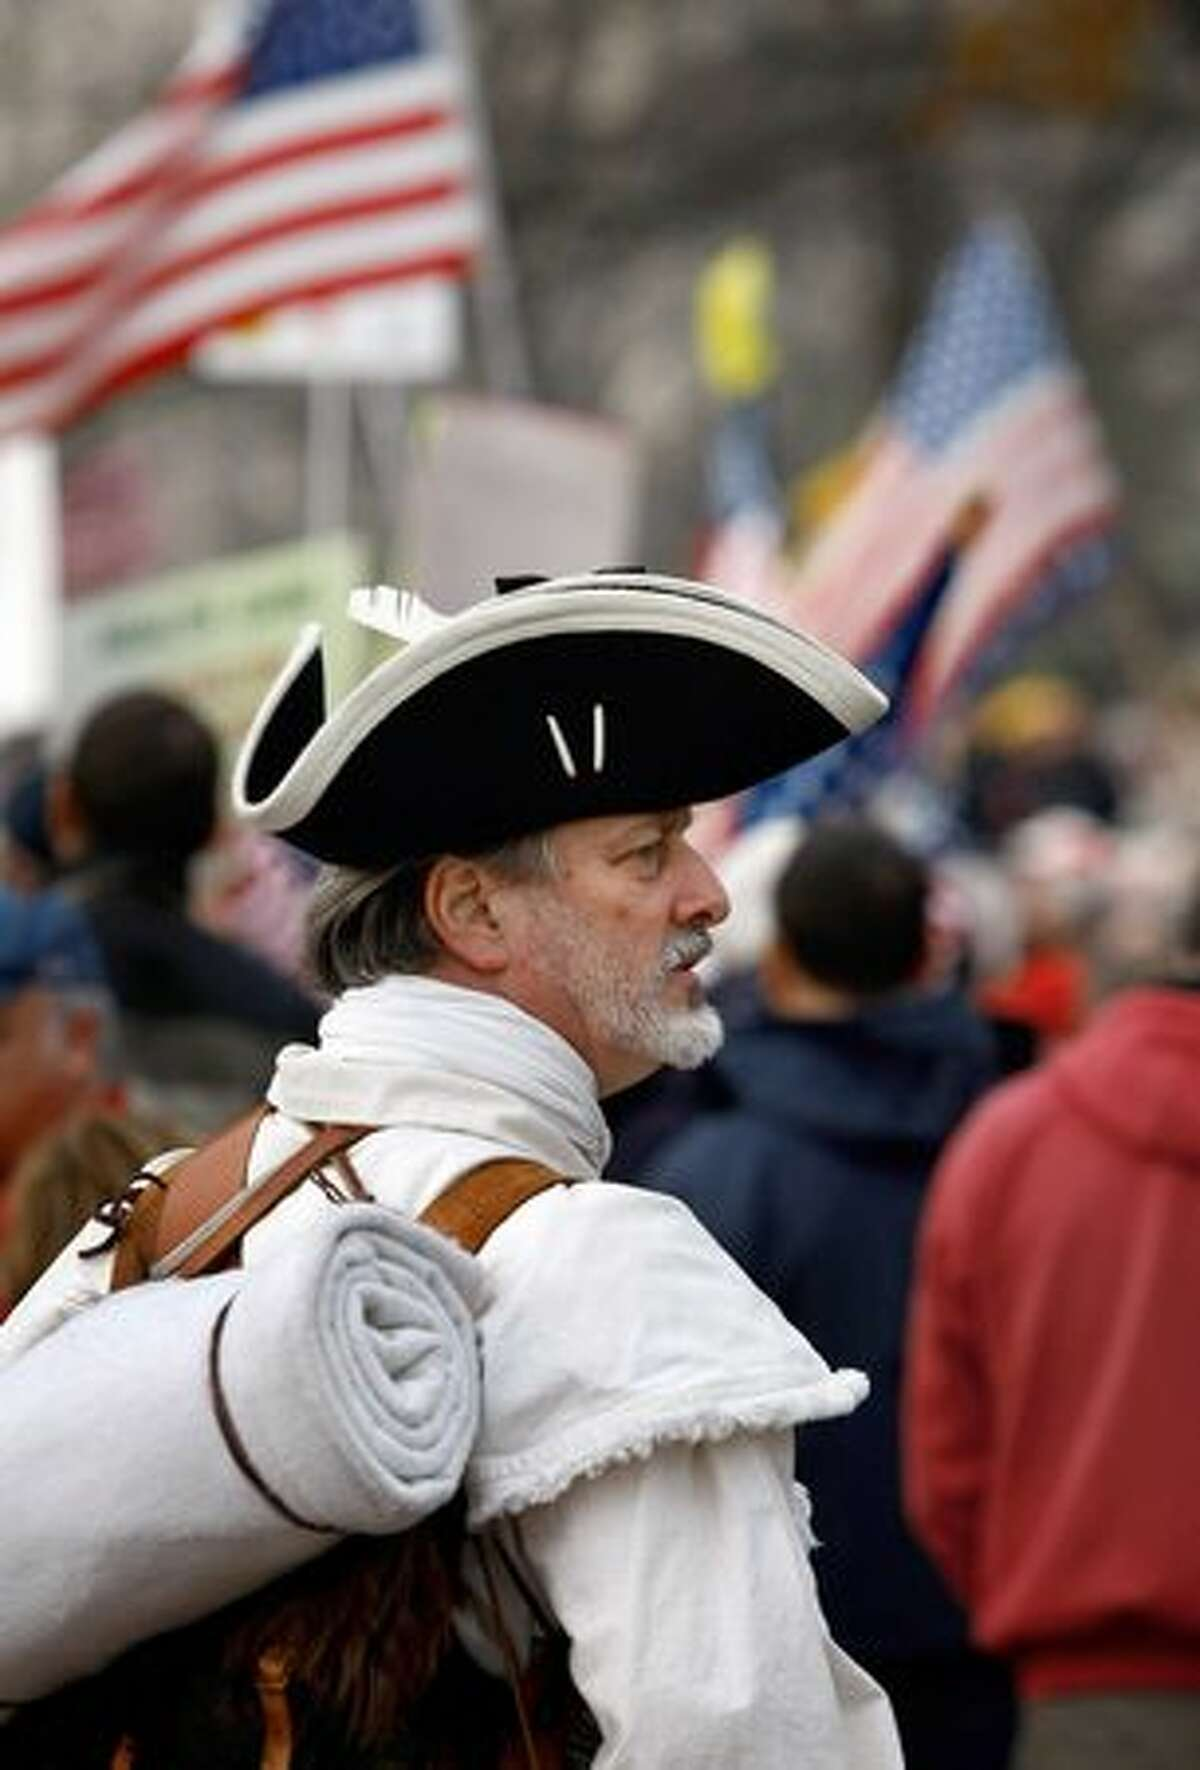 William Temple, a conservative Tea Party activist from Brunswick, Ga., protests health care reform on Dec. 15, 2009 in Washington.